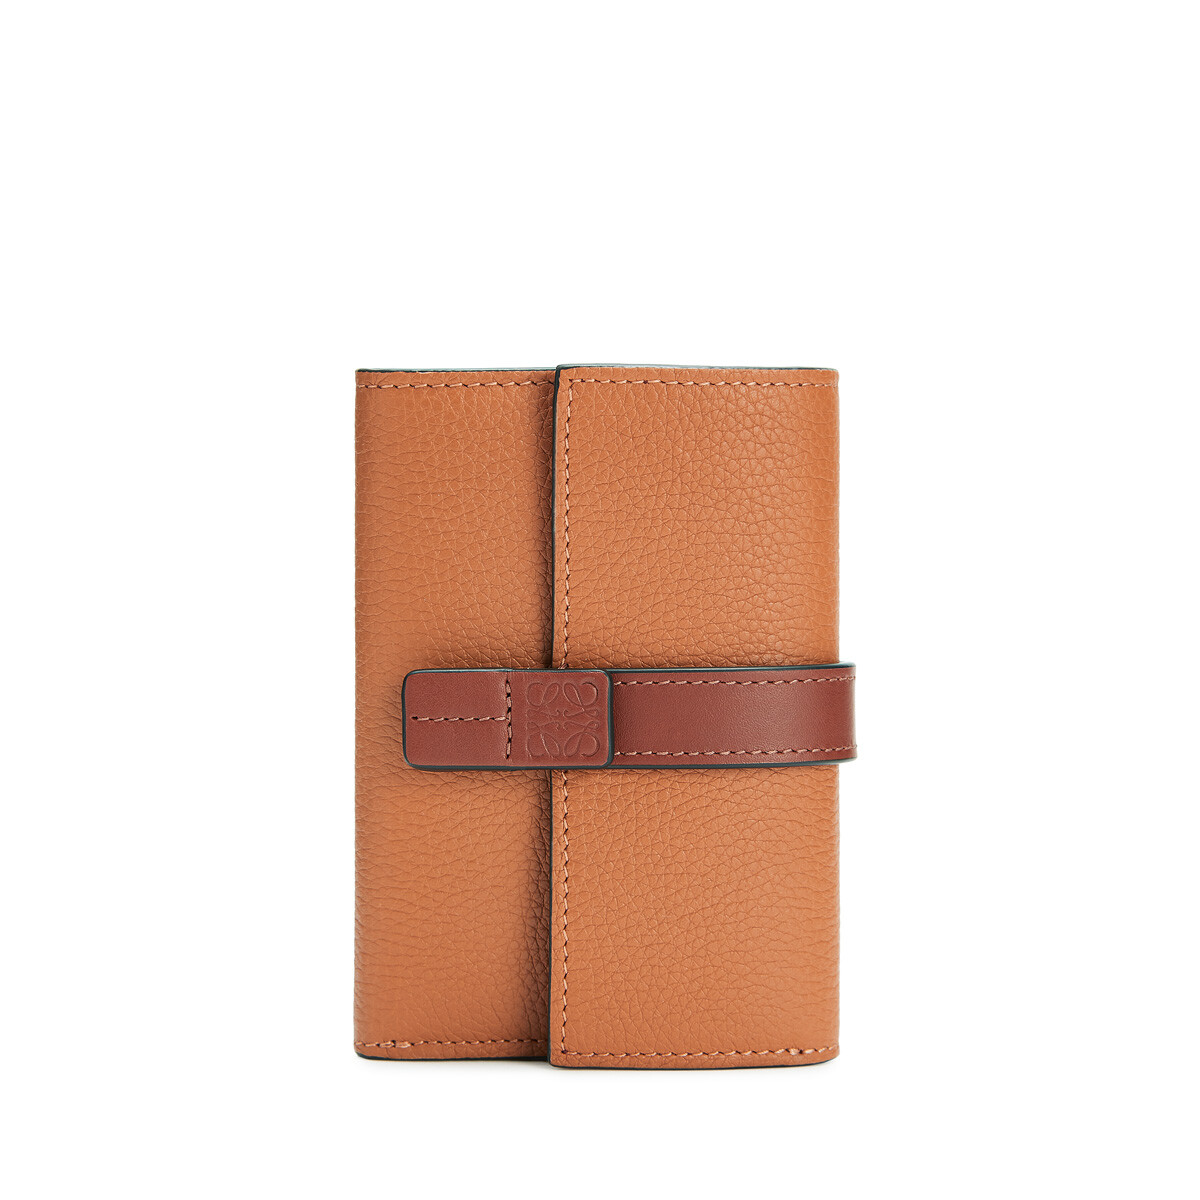 LOEWE Small Vertical Wallet Light Caramel/Pecan Color  front